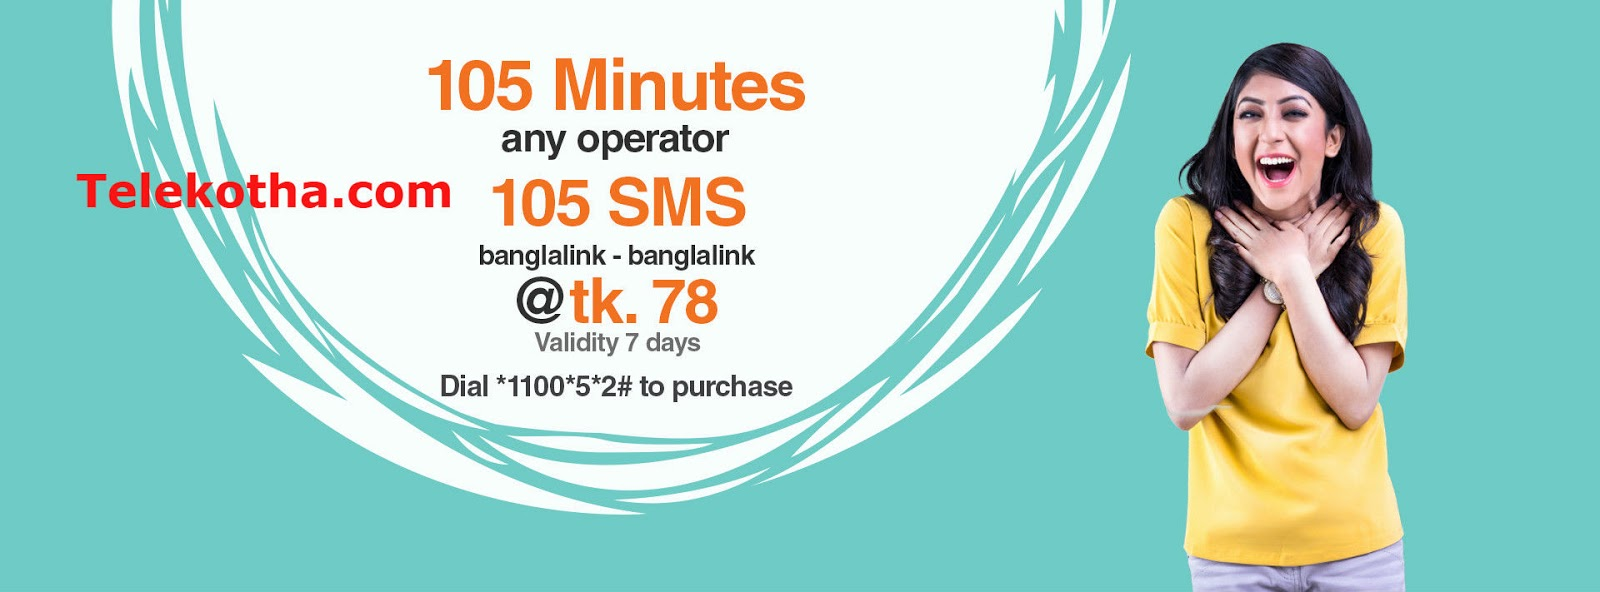 105 minutes (any operator) and 105 SMS (banglalink-banglalink) for just Tk. 78. Dial *1100*5*2#